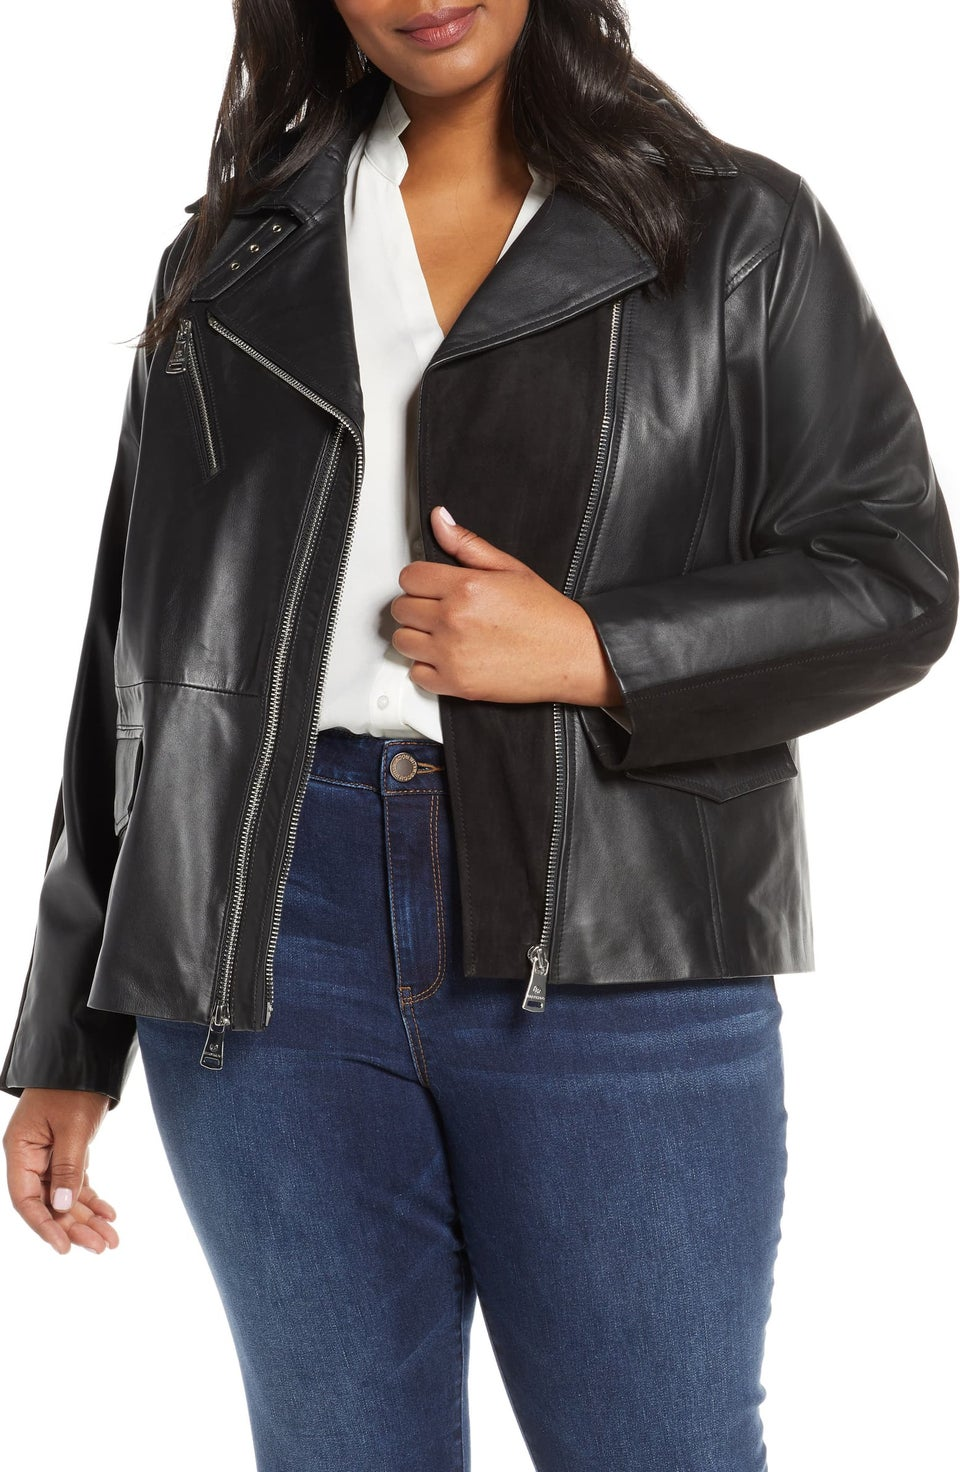 Oh Hey, Curvy Girl! Grab These Major Deals From Nordstrom's Anniversary Sale